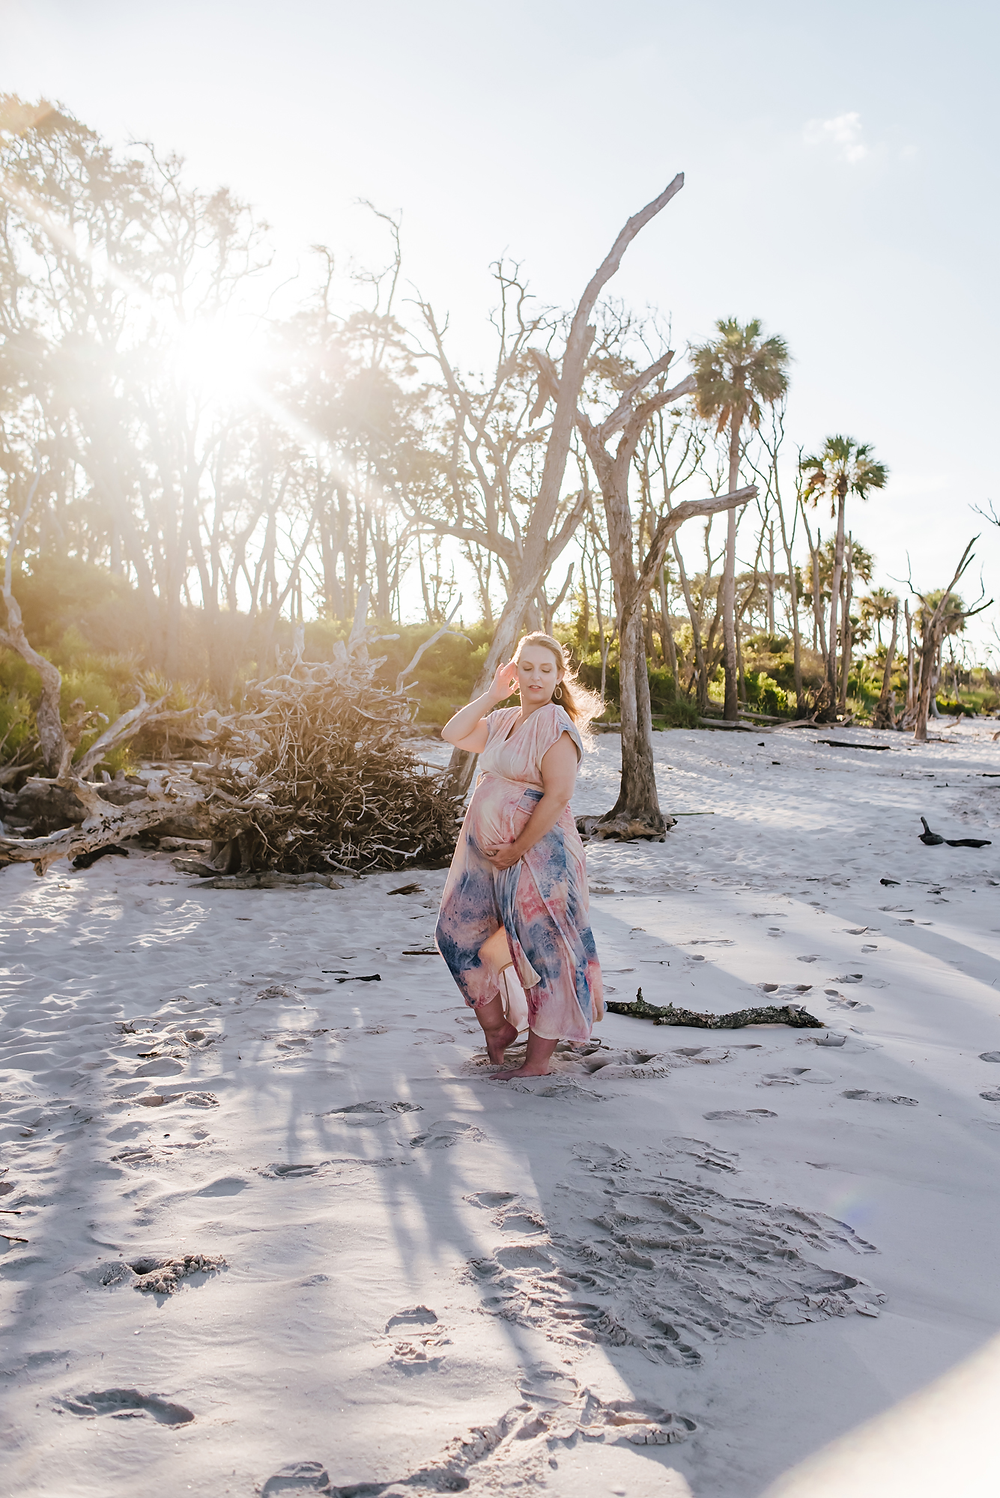 affordable maternity photography in jacksonville fl